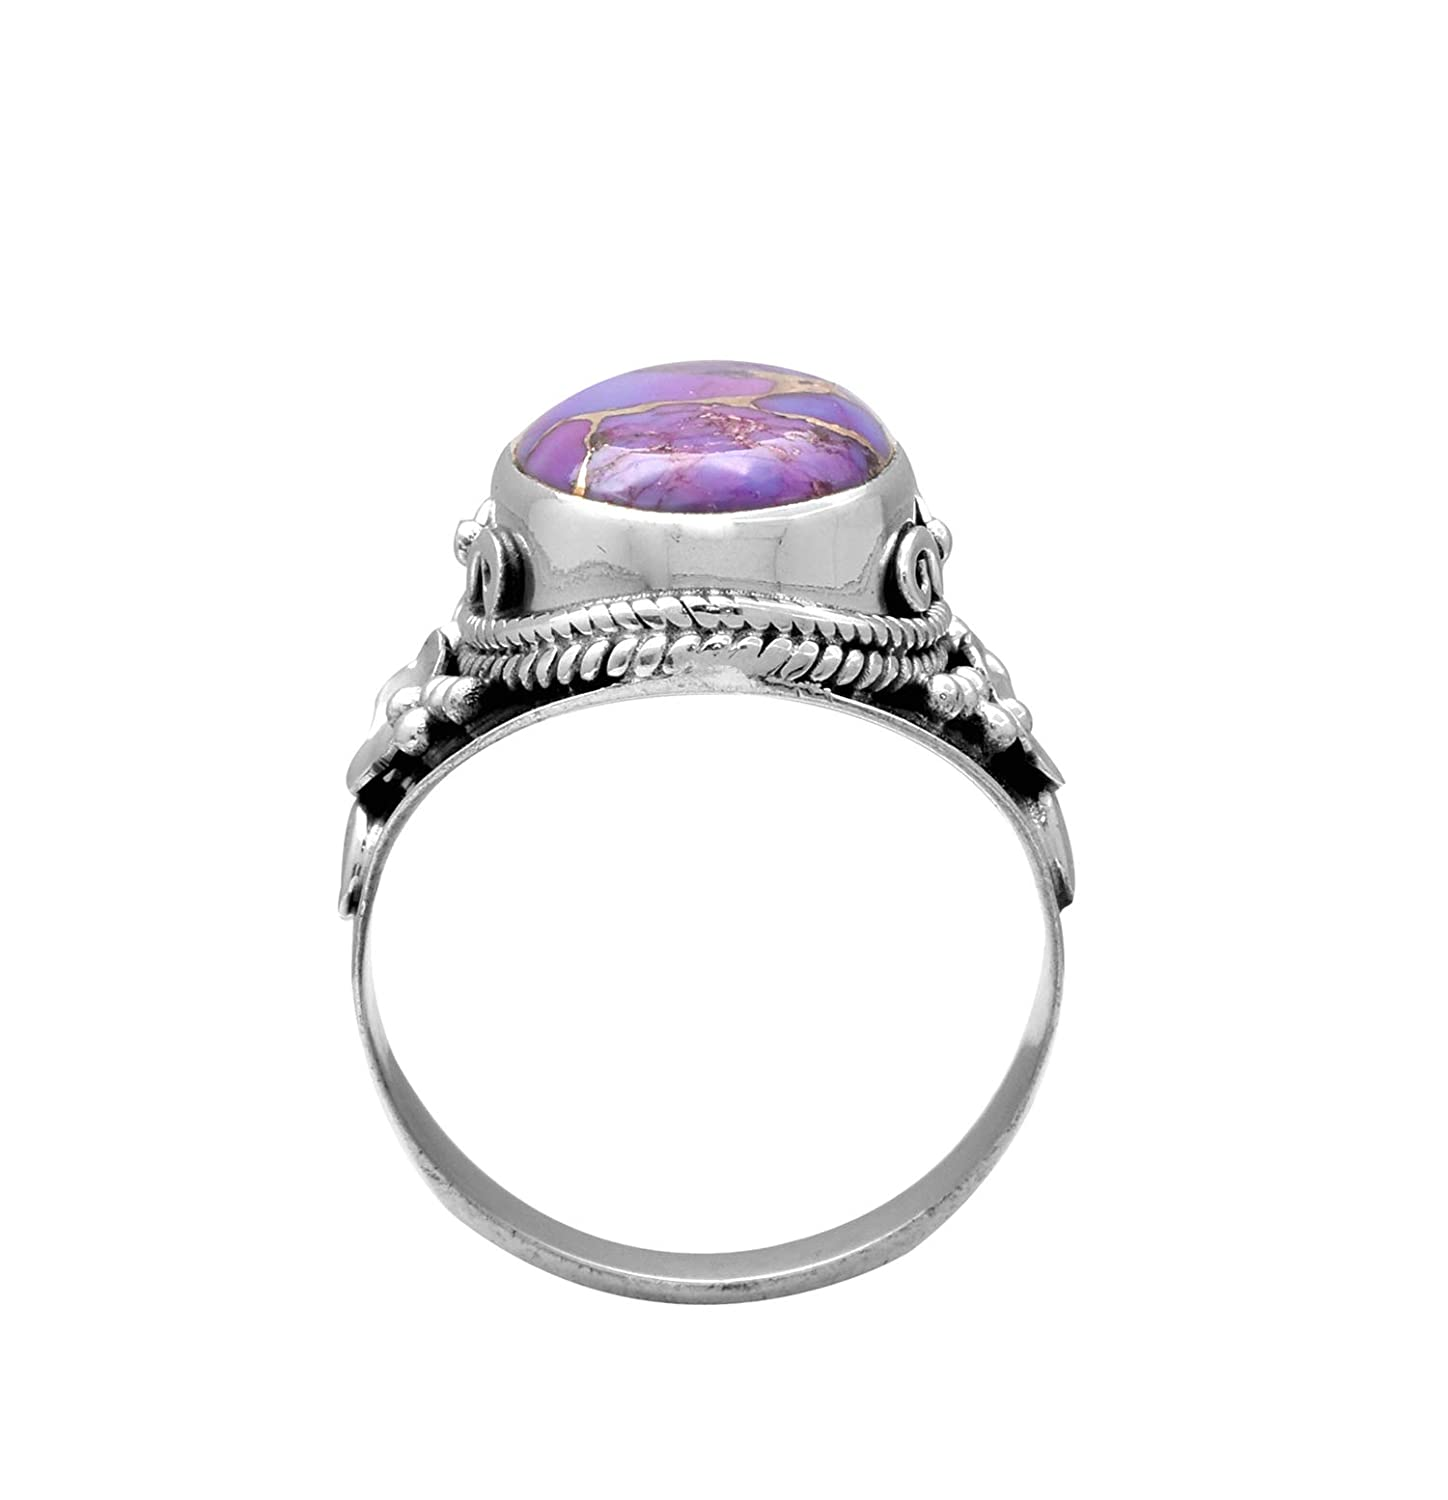 YoTreasure Purple Turquoise Solid 925 Sterling Silver Ring